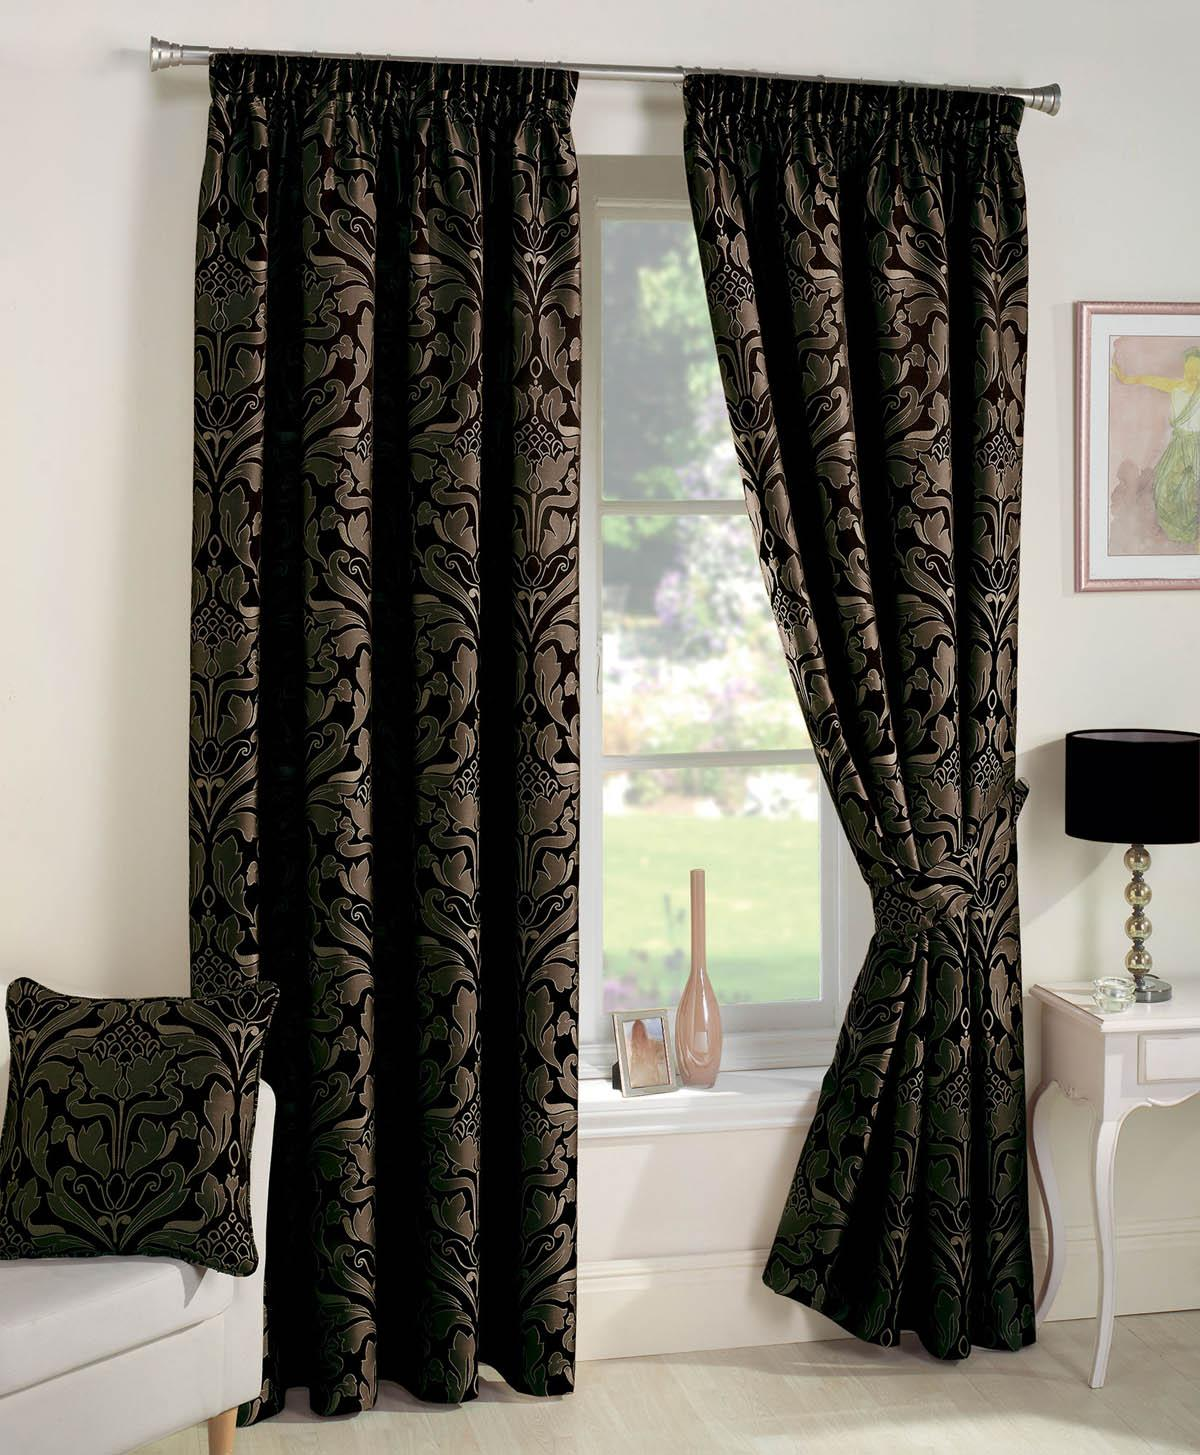 99 Home Design Furniture Shop Black Curtains Shop For Cheap Curtains Amp Blinds And Save